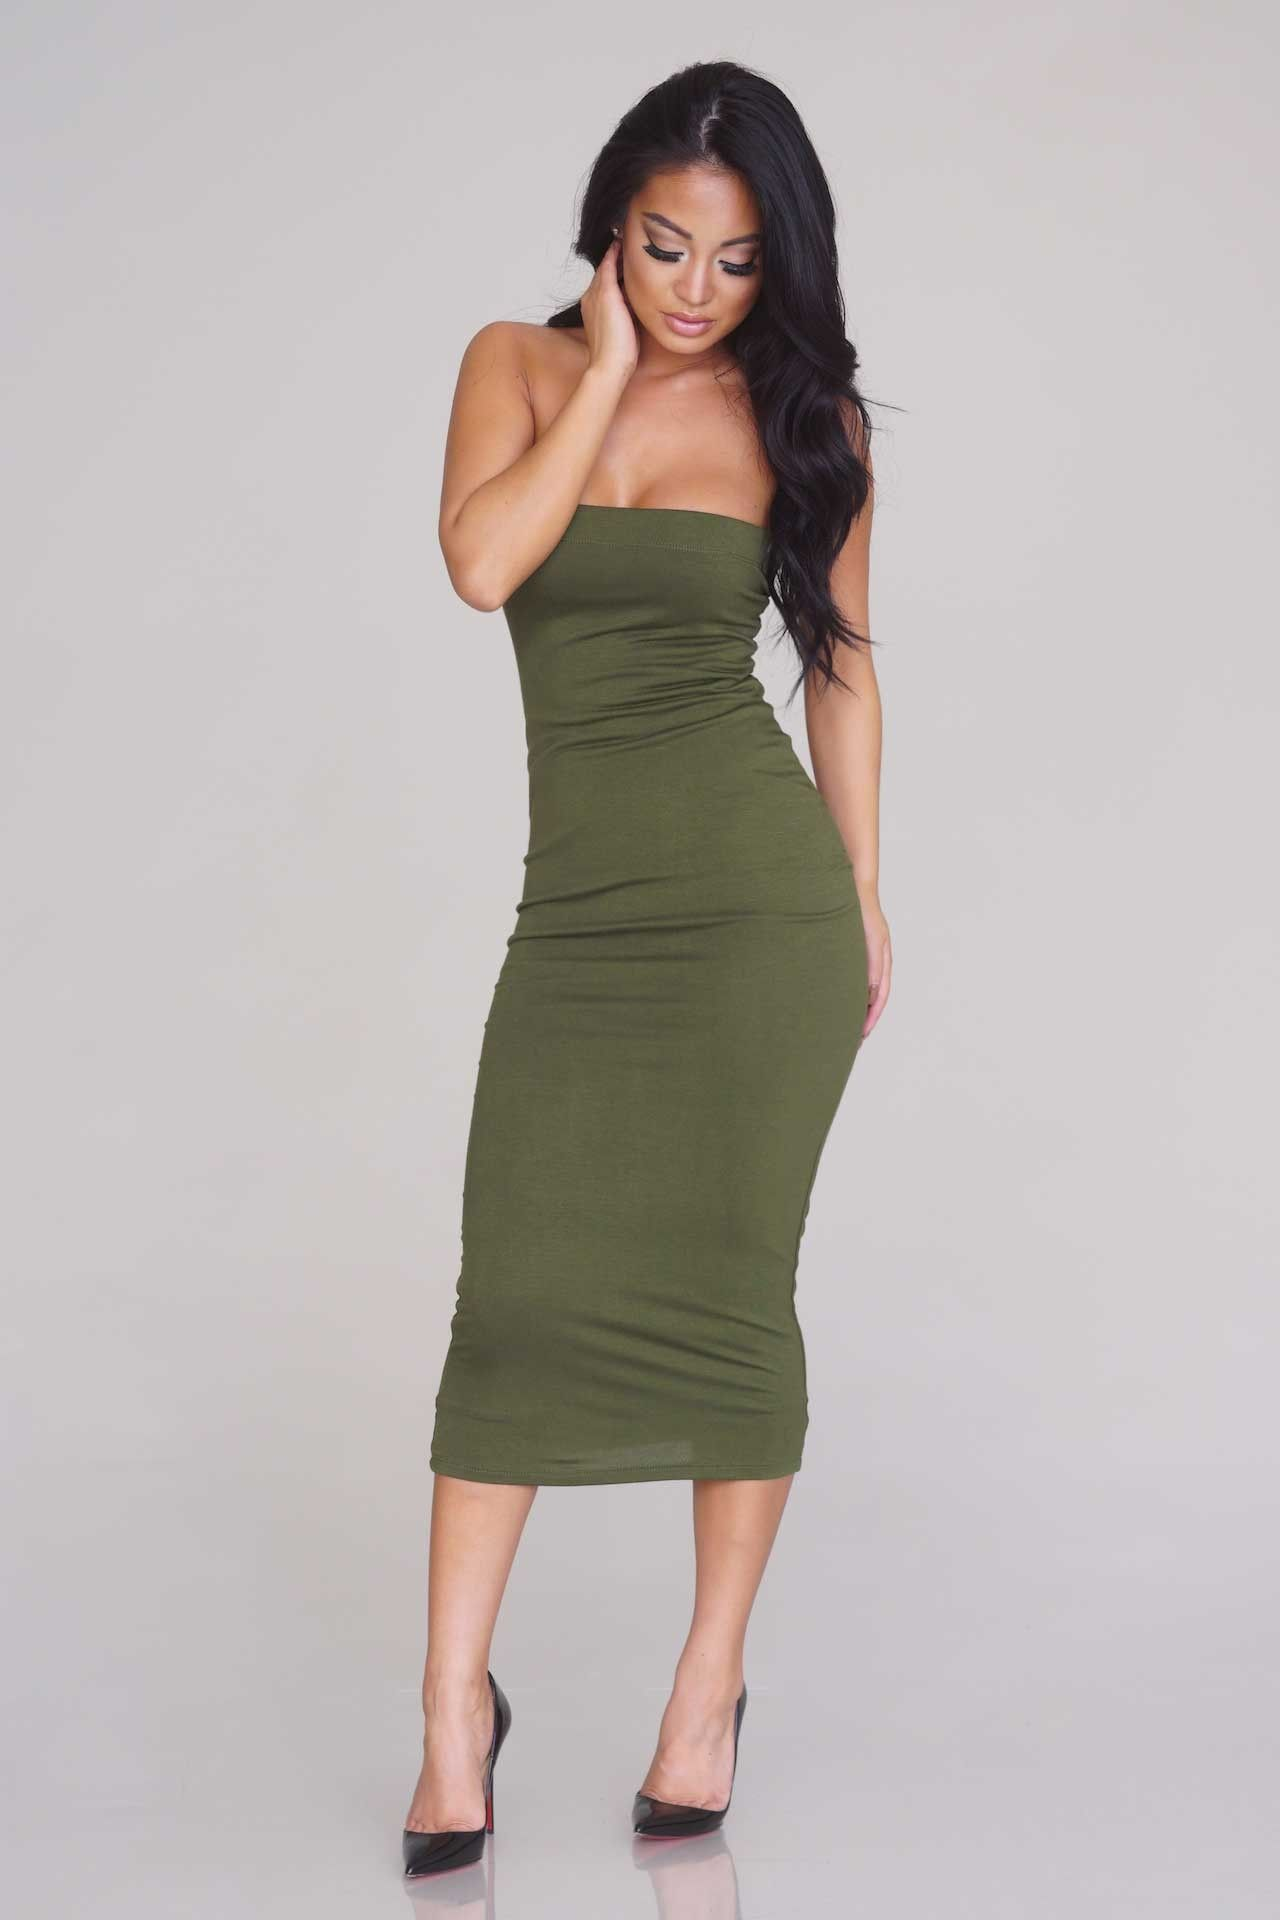 solid tube midi dress - olive - casual - dresses - clothing | she